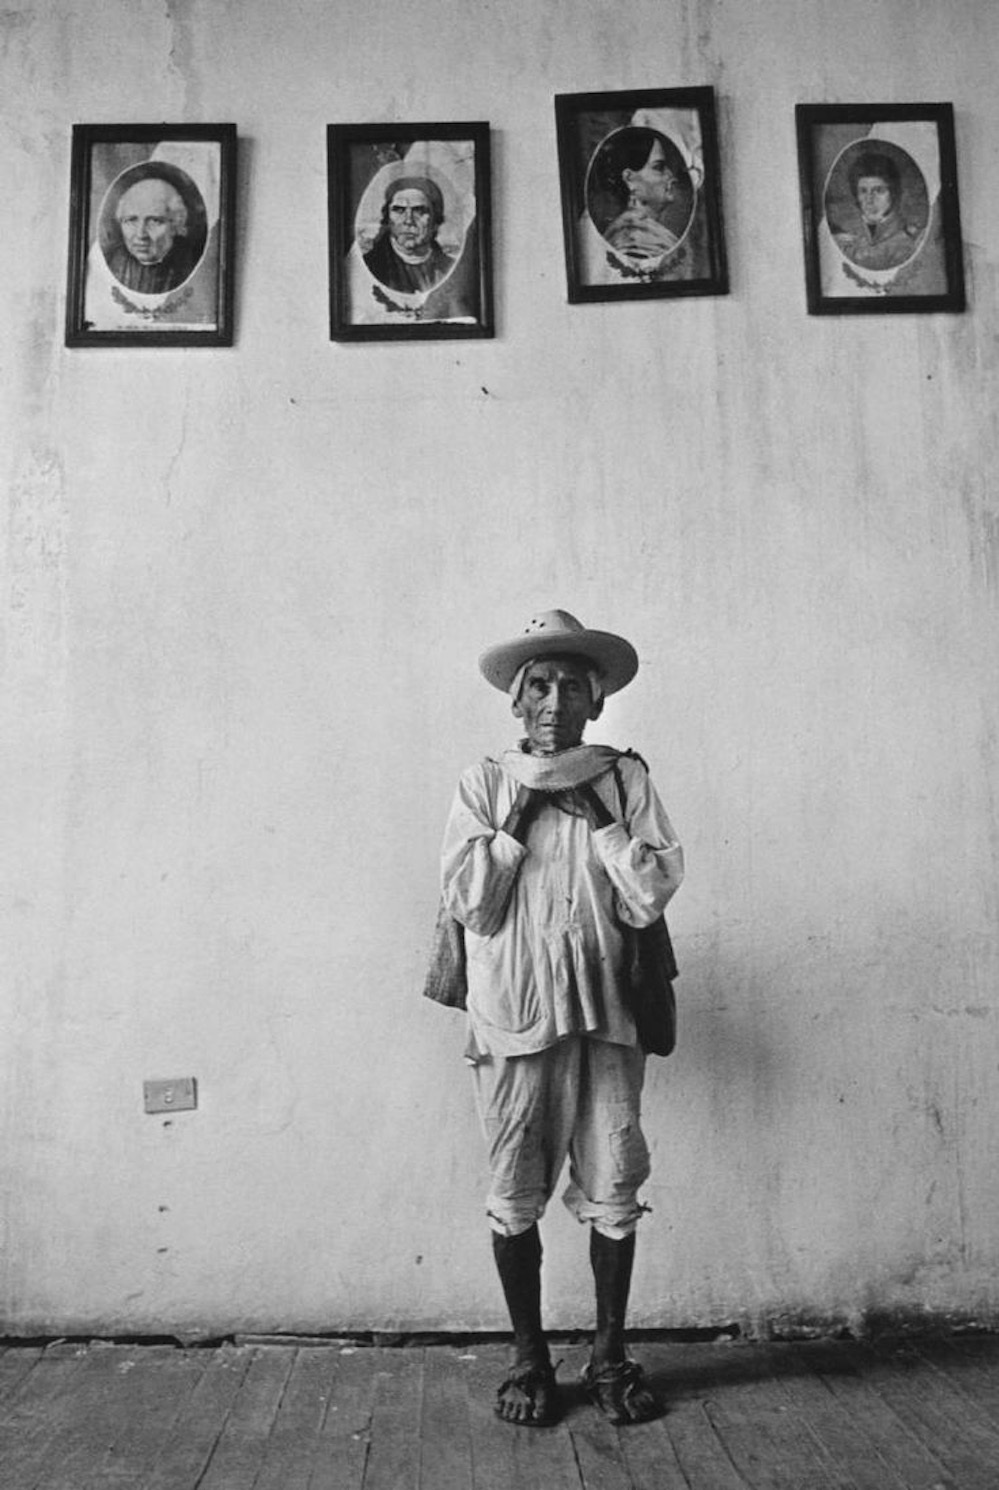 Graciela Iturbide   Héroes de la Patria,  Cuetzalan, Puebla, México, 1993 14 x 11 inch Silver Gelatin Print Signed by the artist in ink on recto From the collection of the artist Illustrated in:  Images of the Spirit , Aperture, 1996, cover image and page 10 $4,000